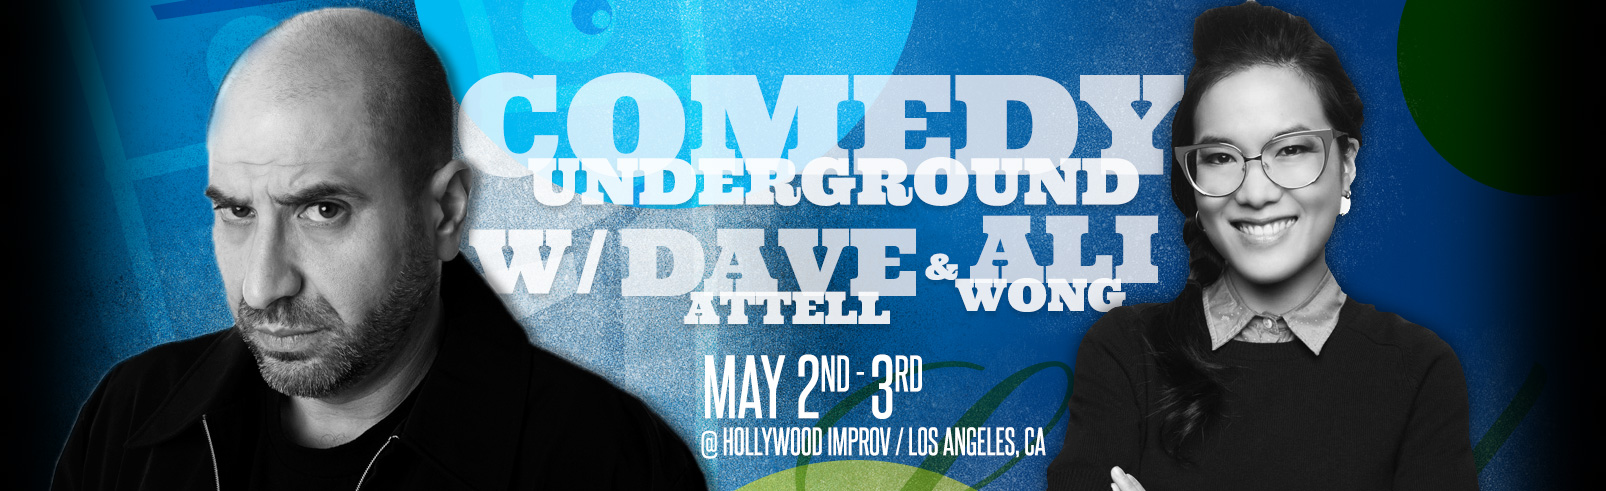 Comedy Underground @ Hollywood Improv